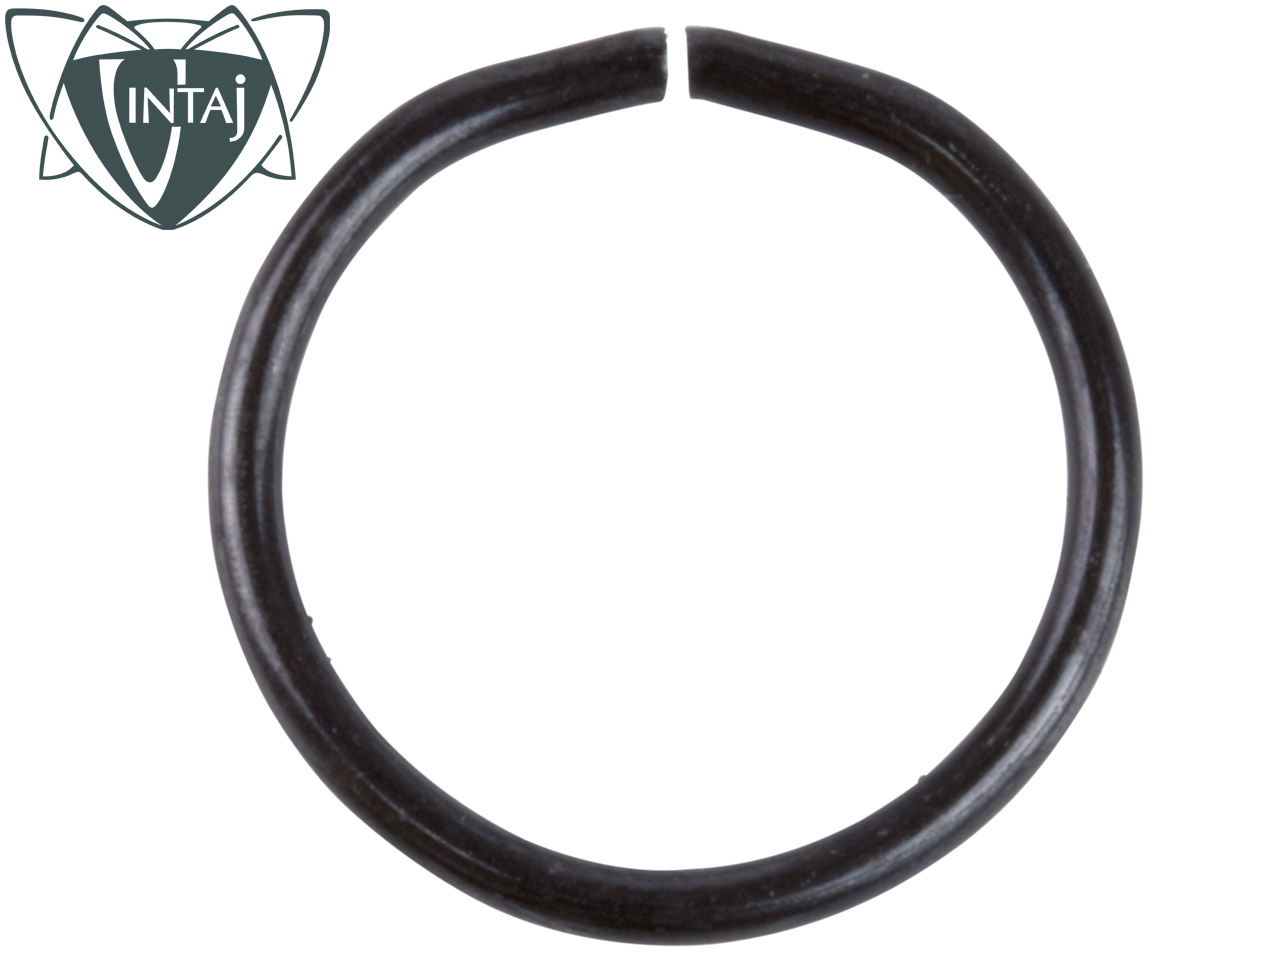 Vintaj Arte Metal Jump Rings 15.0mm Pack Of 5